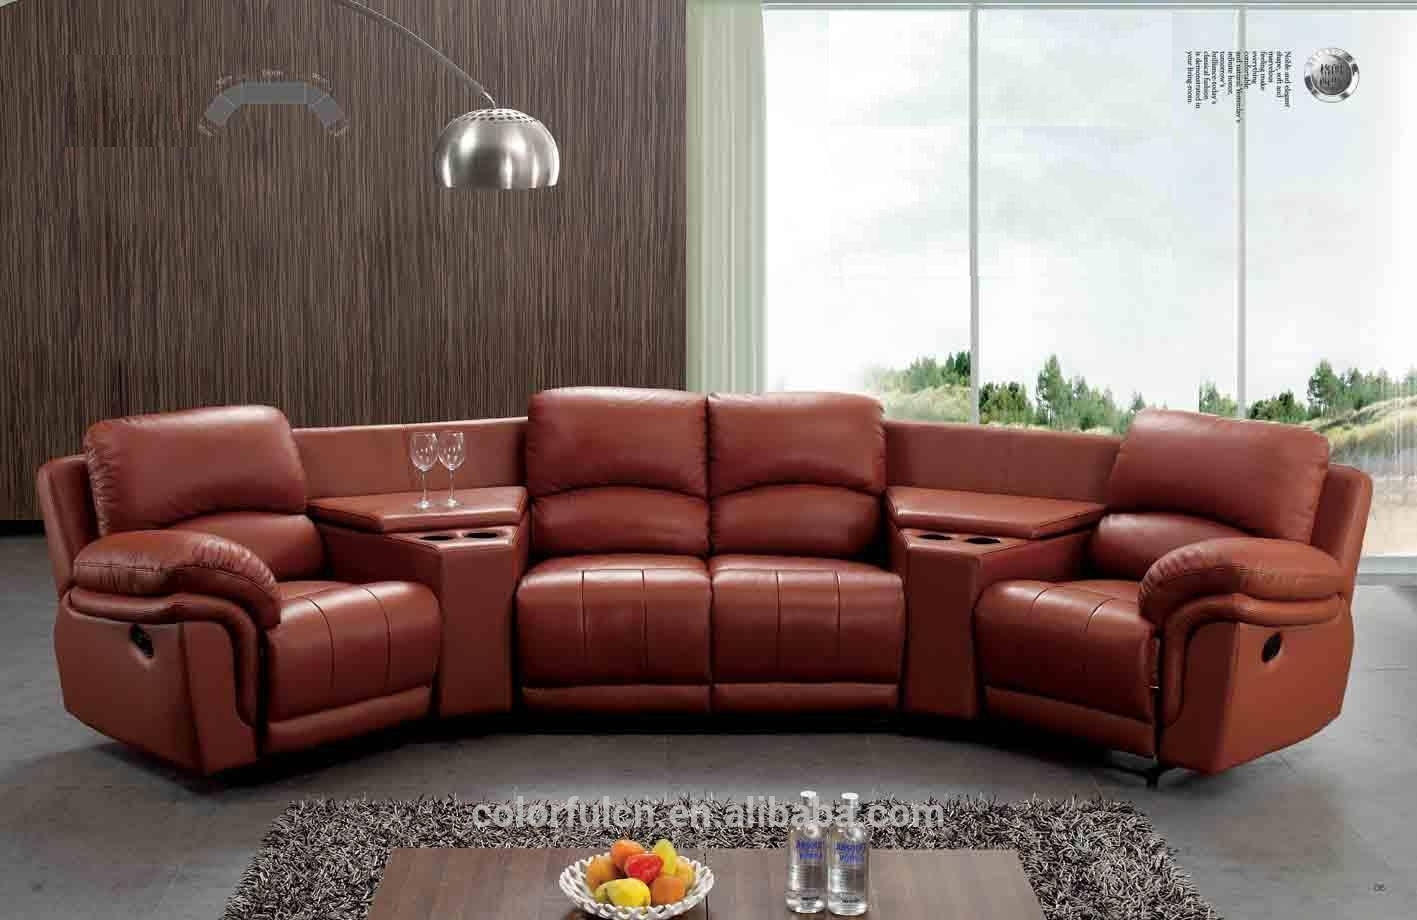 Semi-Circle Sectional Sofa, Semi-Circle Sectional Sofa Suppliers throughout Semi Circular Sectional Sofas (Image 14 of 15)